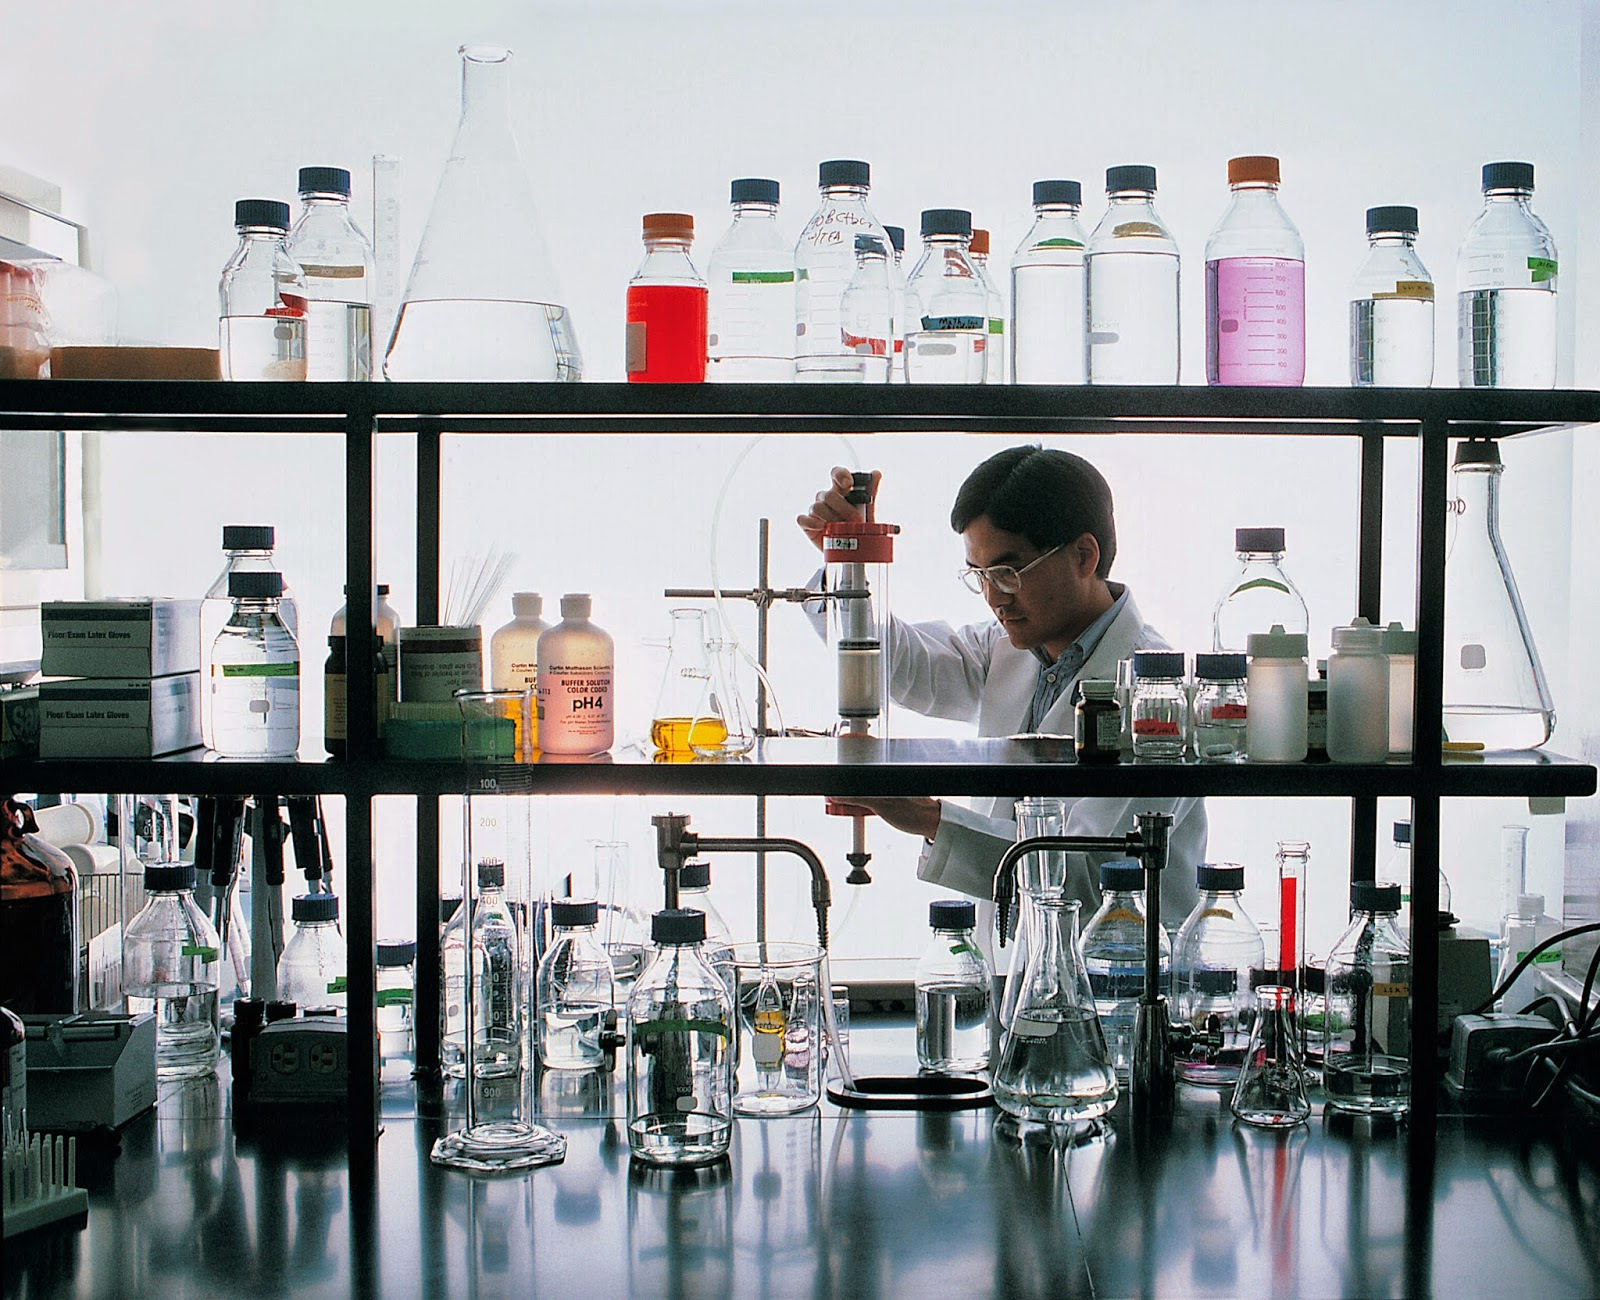 Scientist working with chemicals